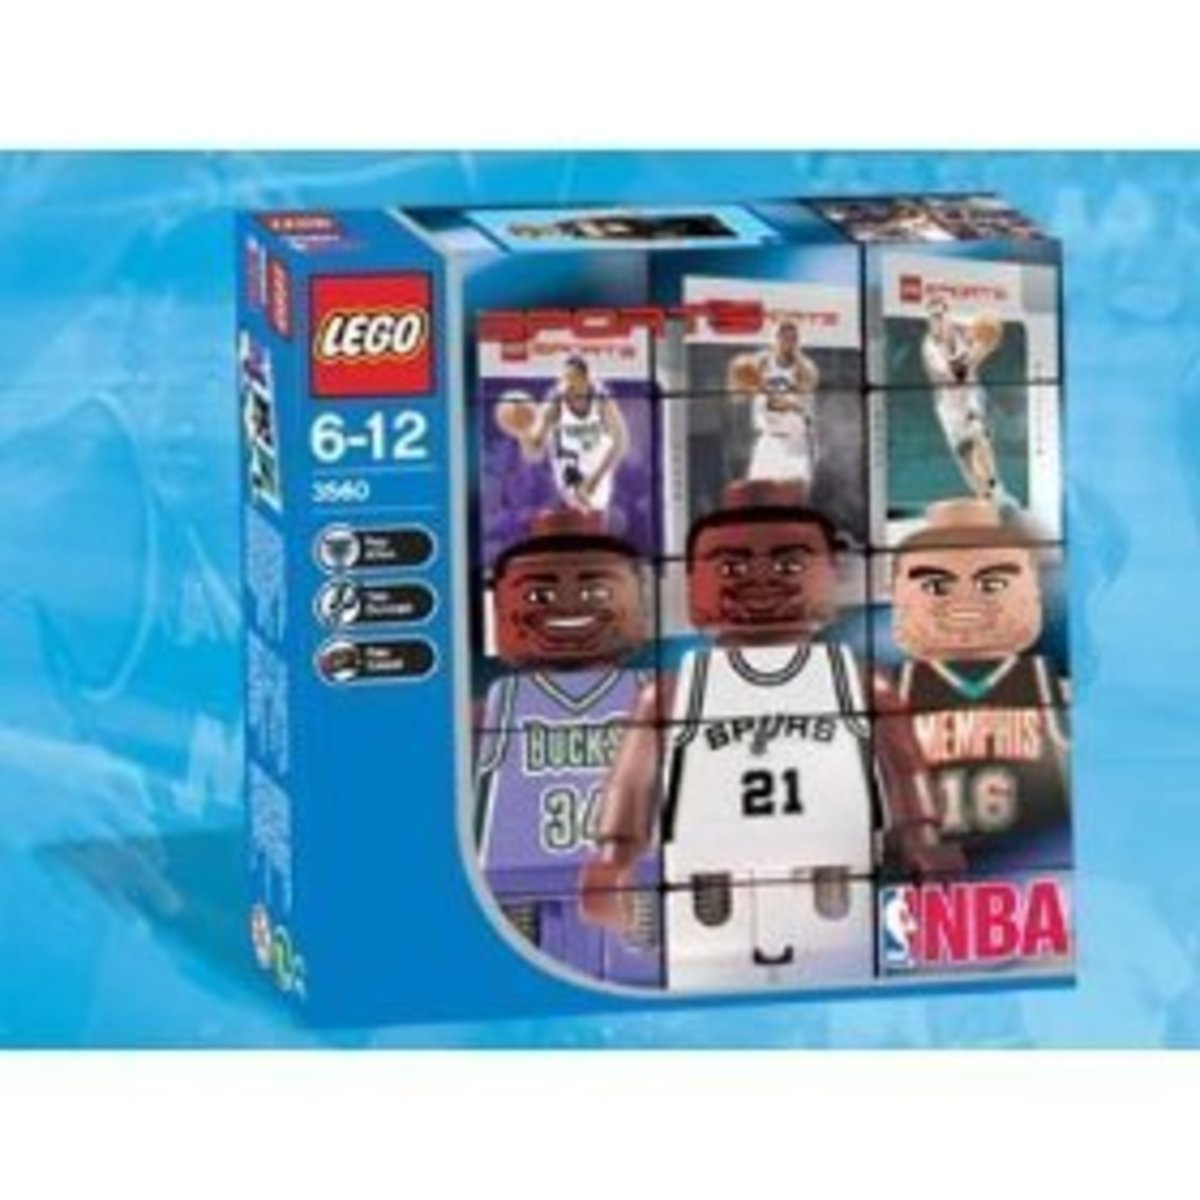 NBA Collector Set #1 in its box